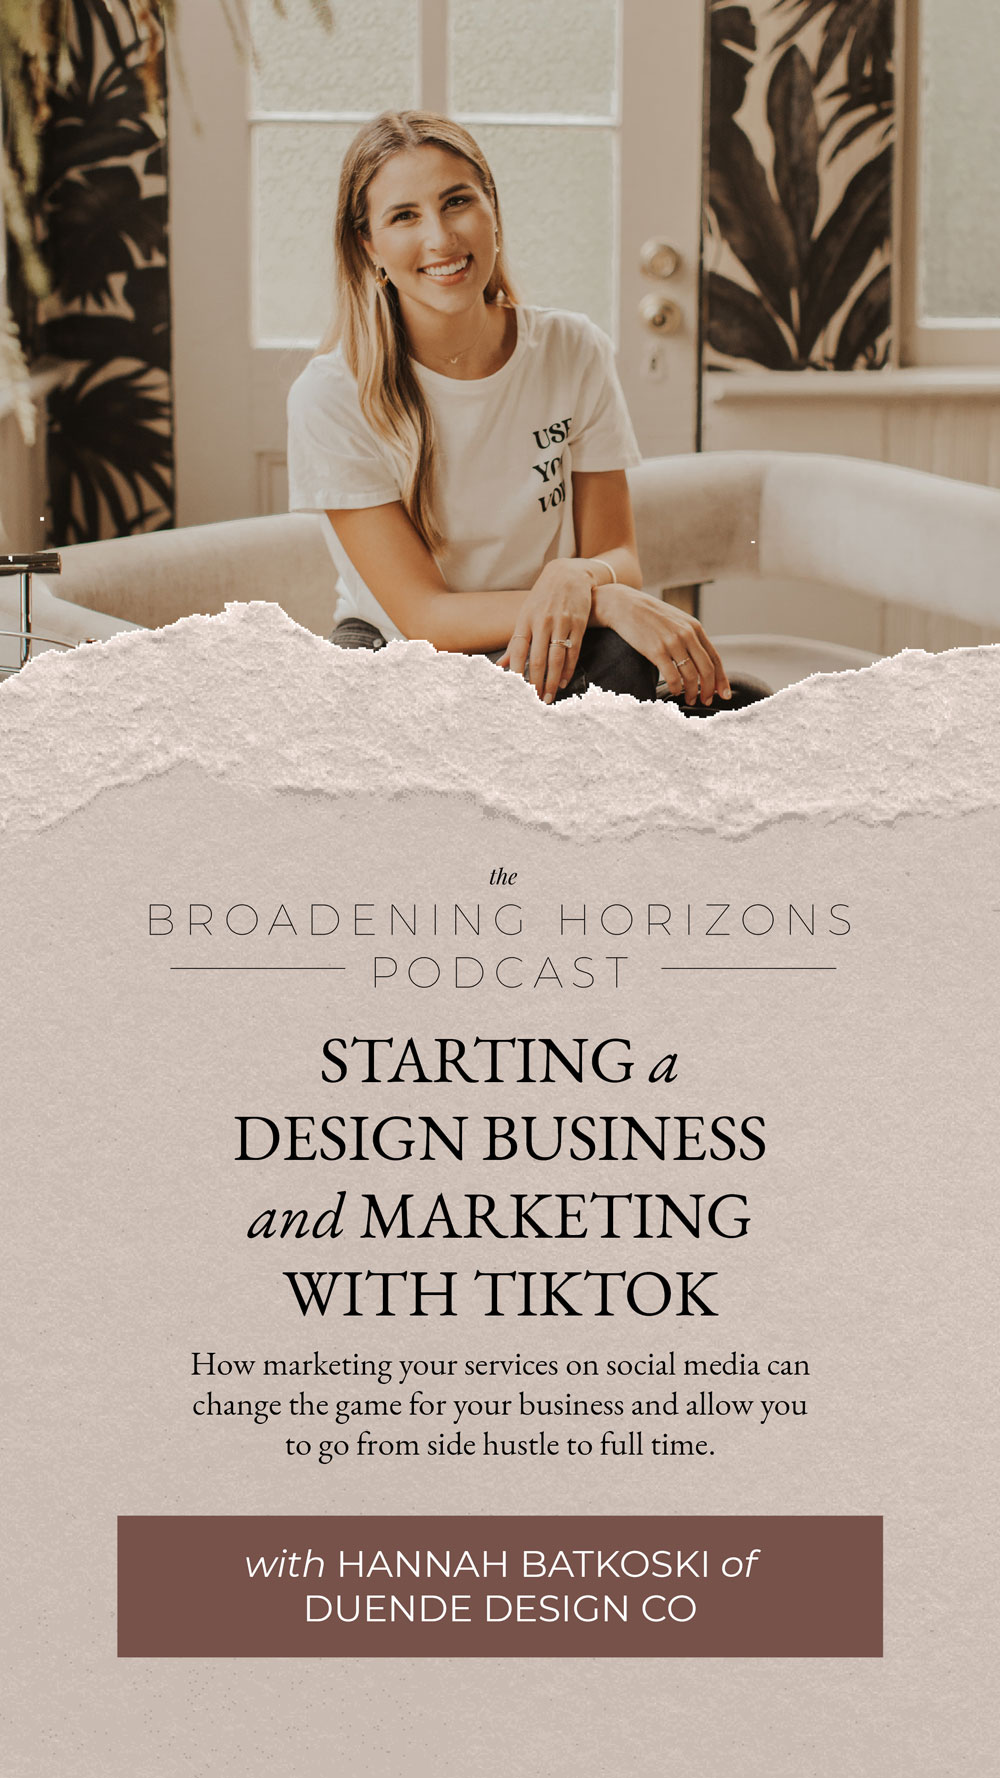 Starting a Design Business and Marketing with TikTok with Duende Design Co from www.sweethorizonblog.com